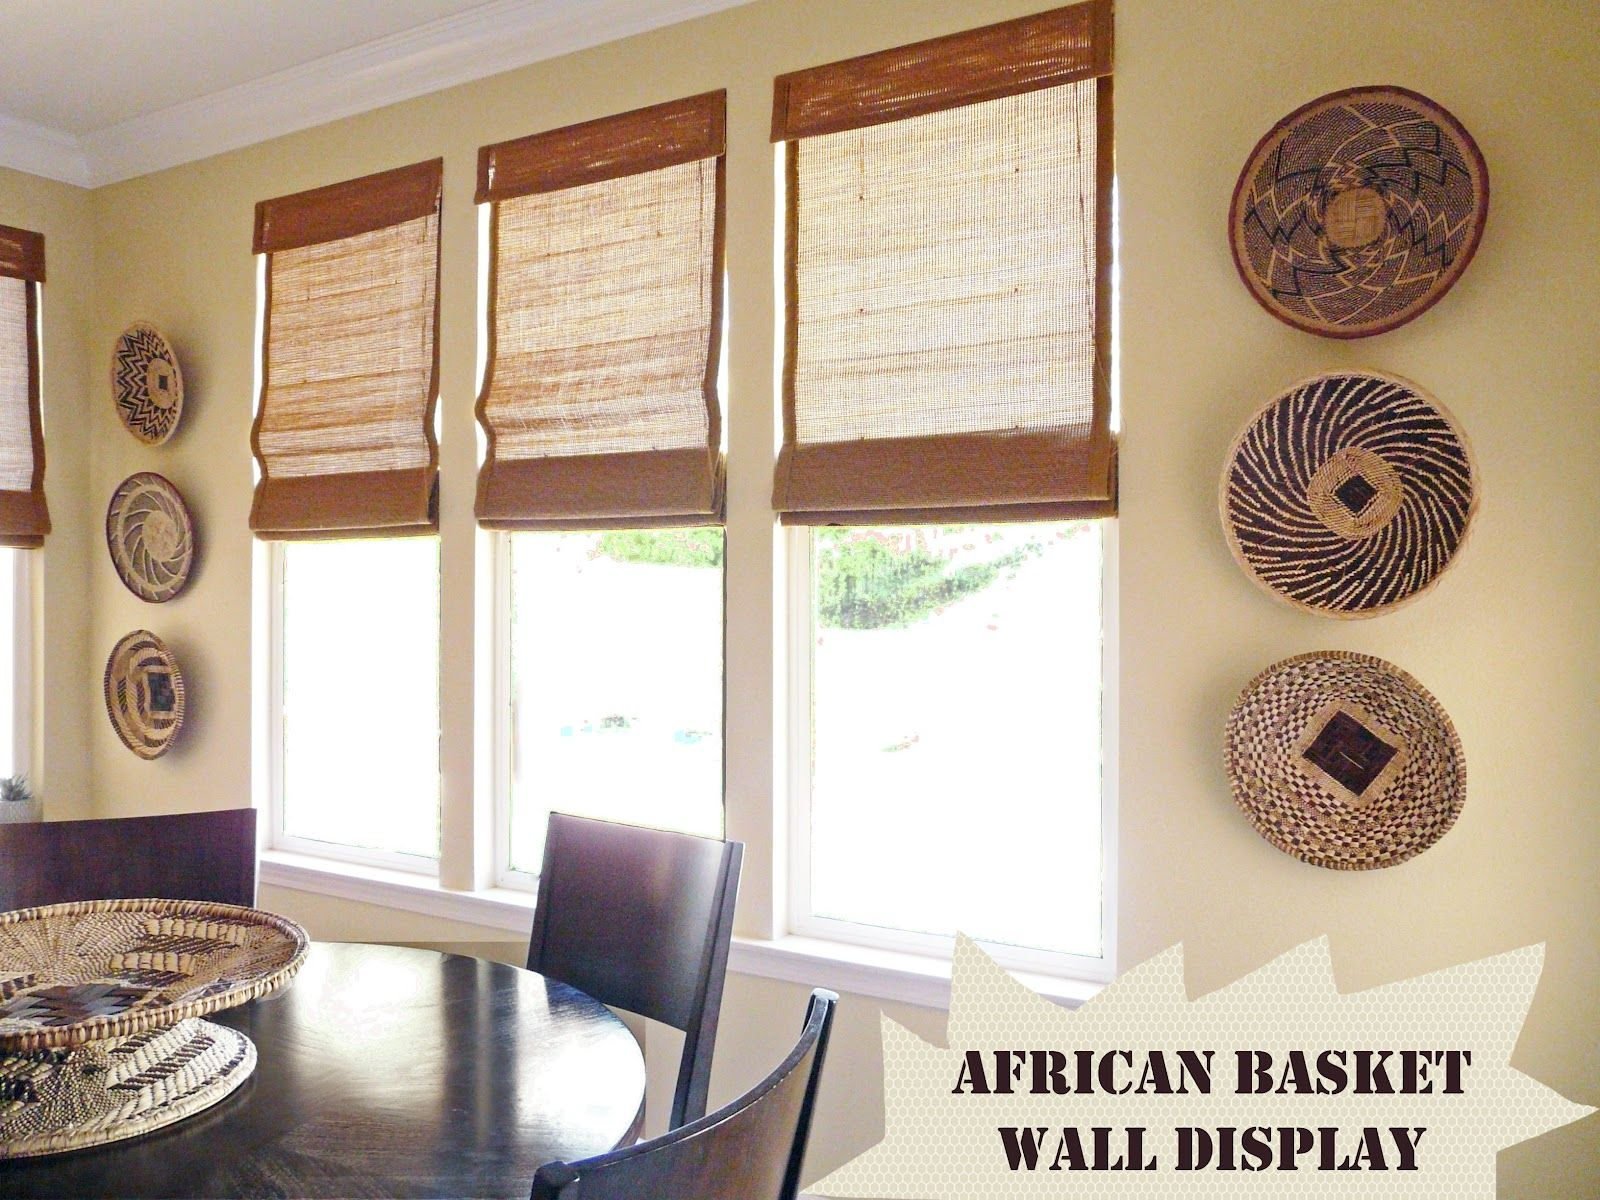 African Wall Decor african decor for the home | home] african basket wall decor